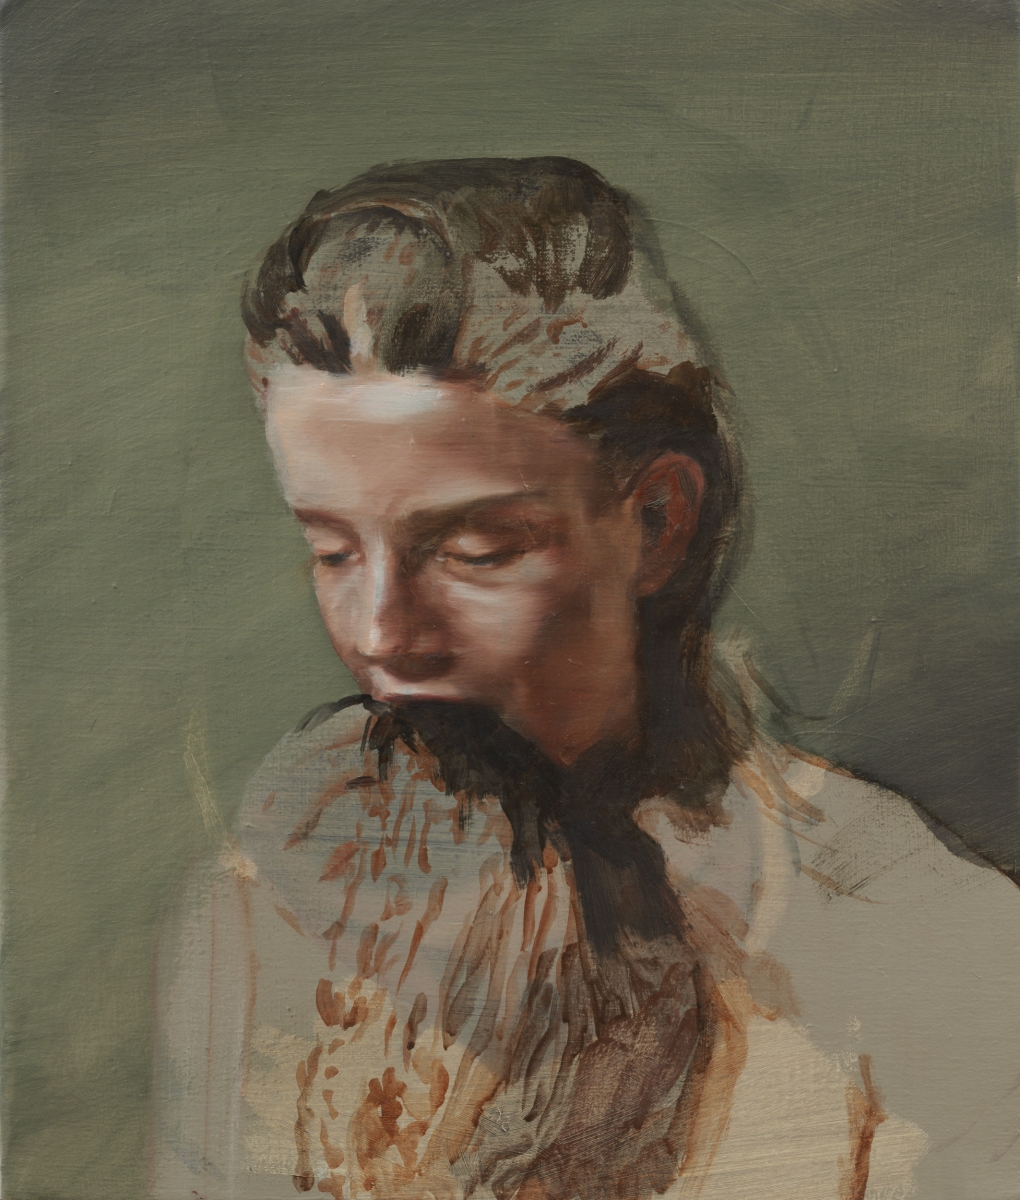 Michaël Borremans, Eating the Beard, 2010.